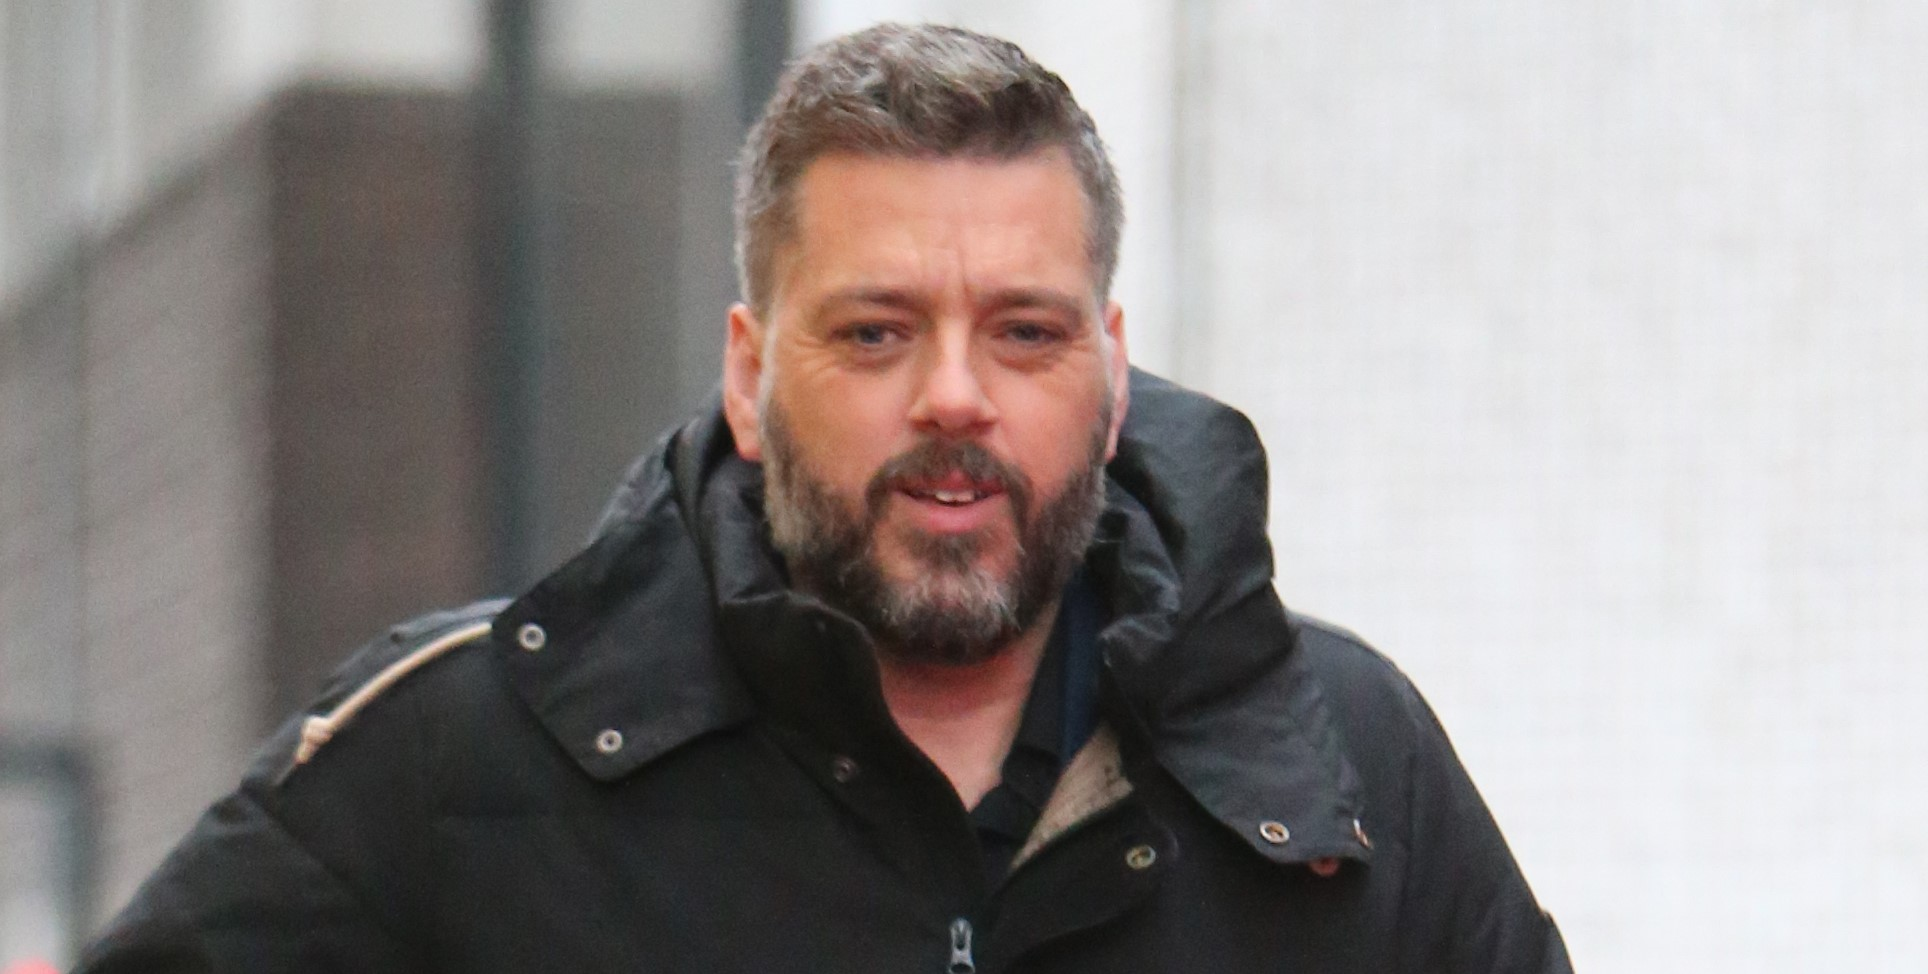 I'm A Celeb's Iain Lee sends ambulance to suicidal listener live on radio show